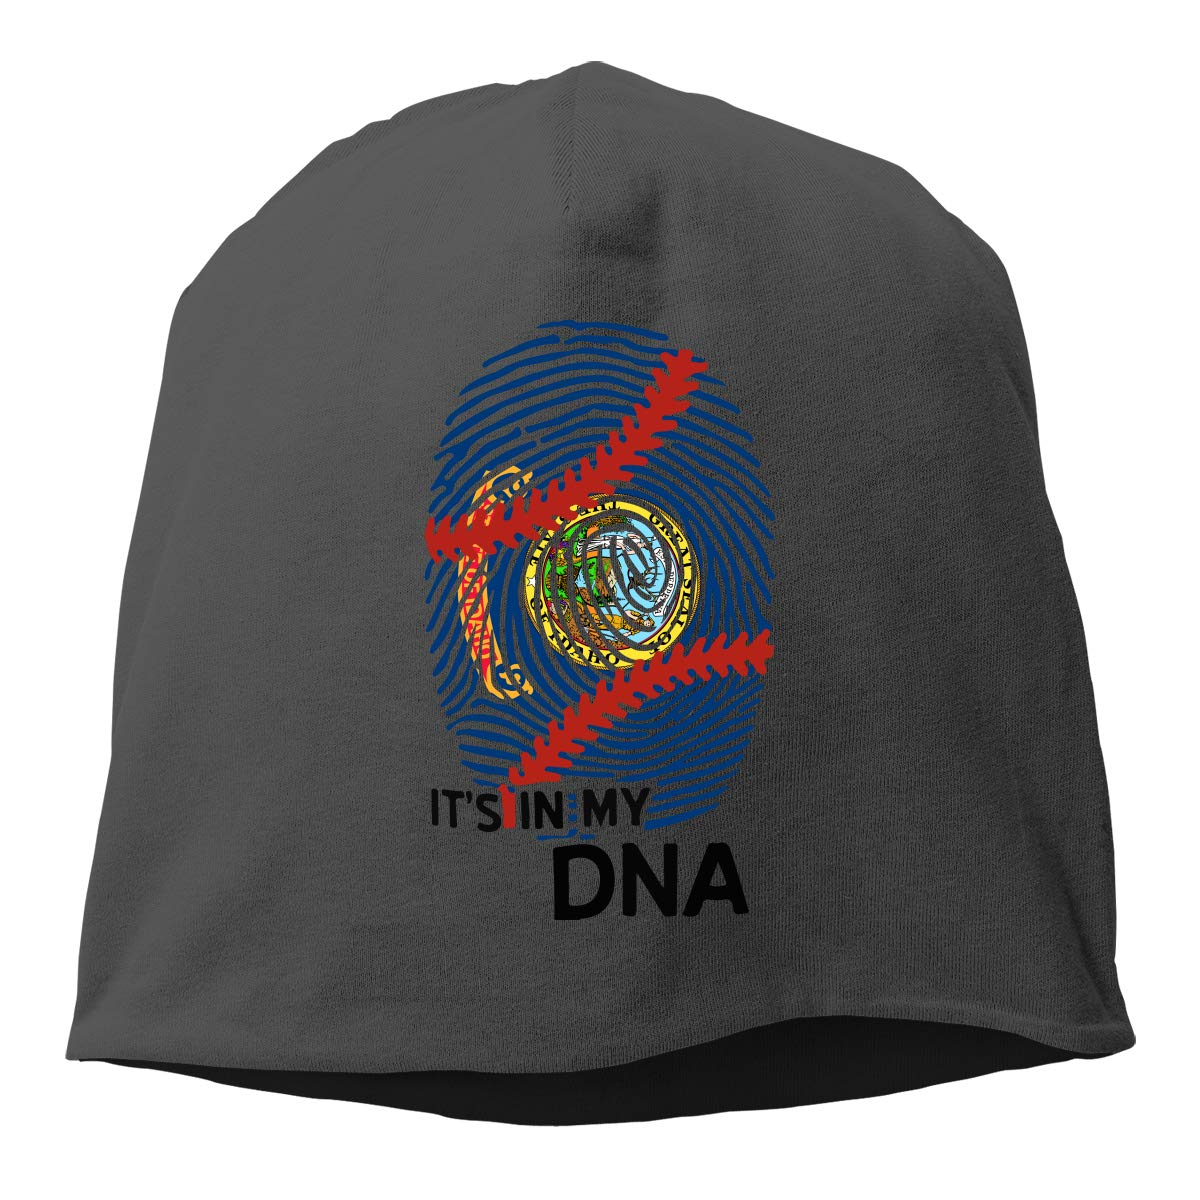 Idaho State Flag Baseball in My DNA Beanie Skull Cap for Women and Men Winter Warm Daily Hat